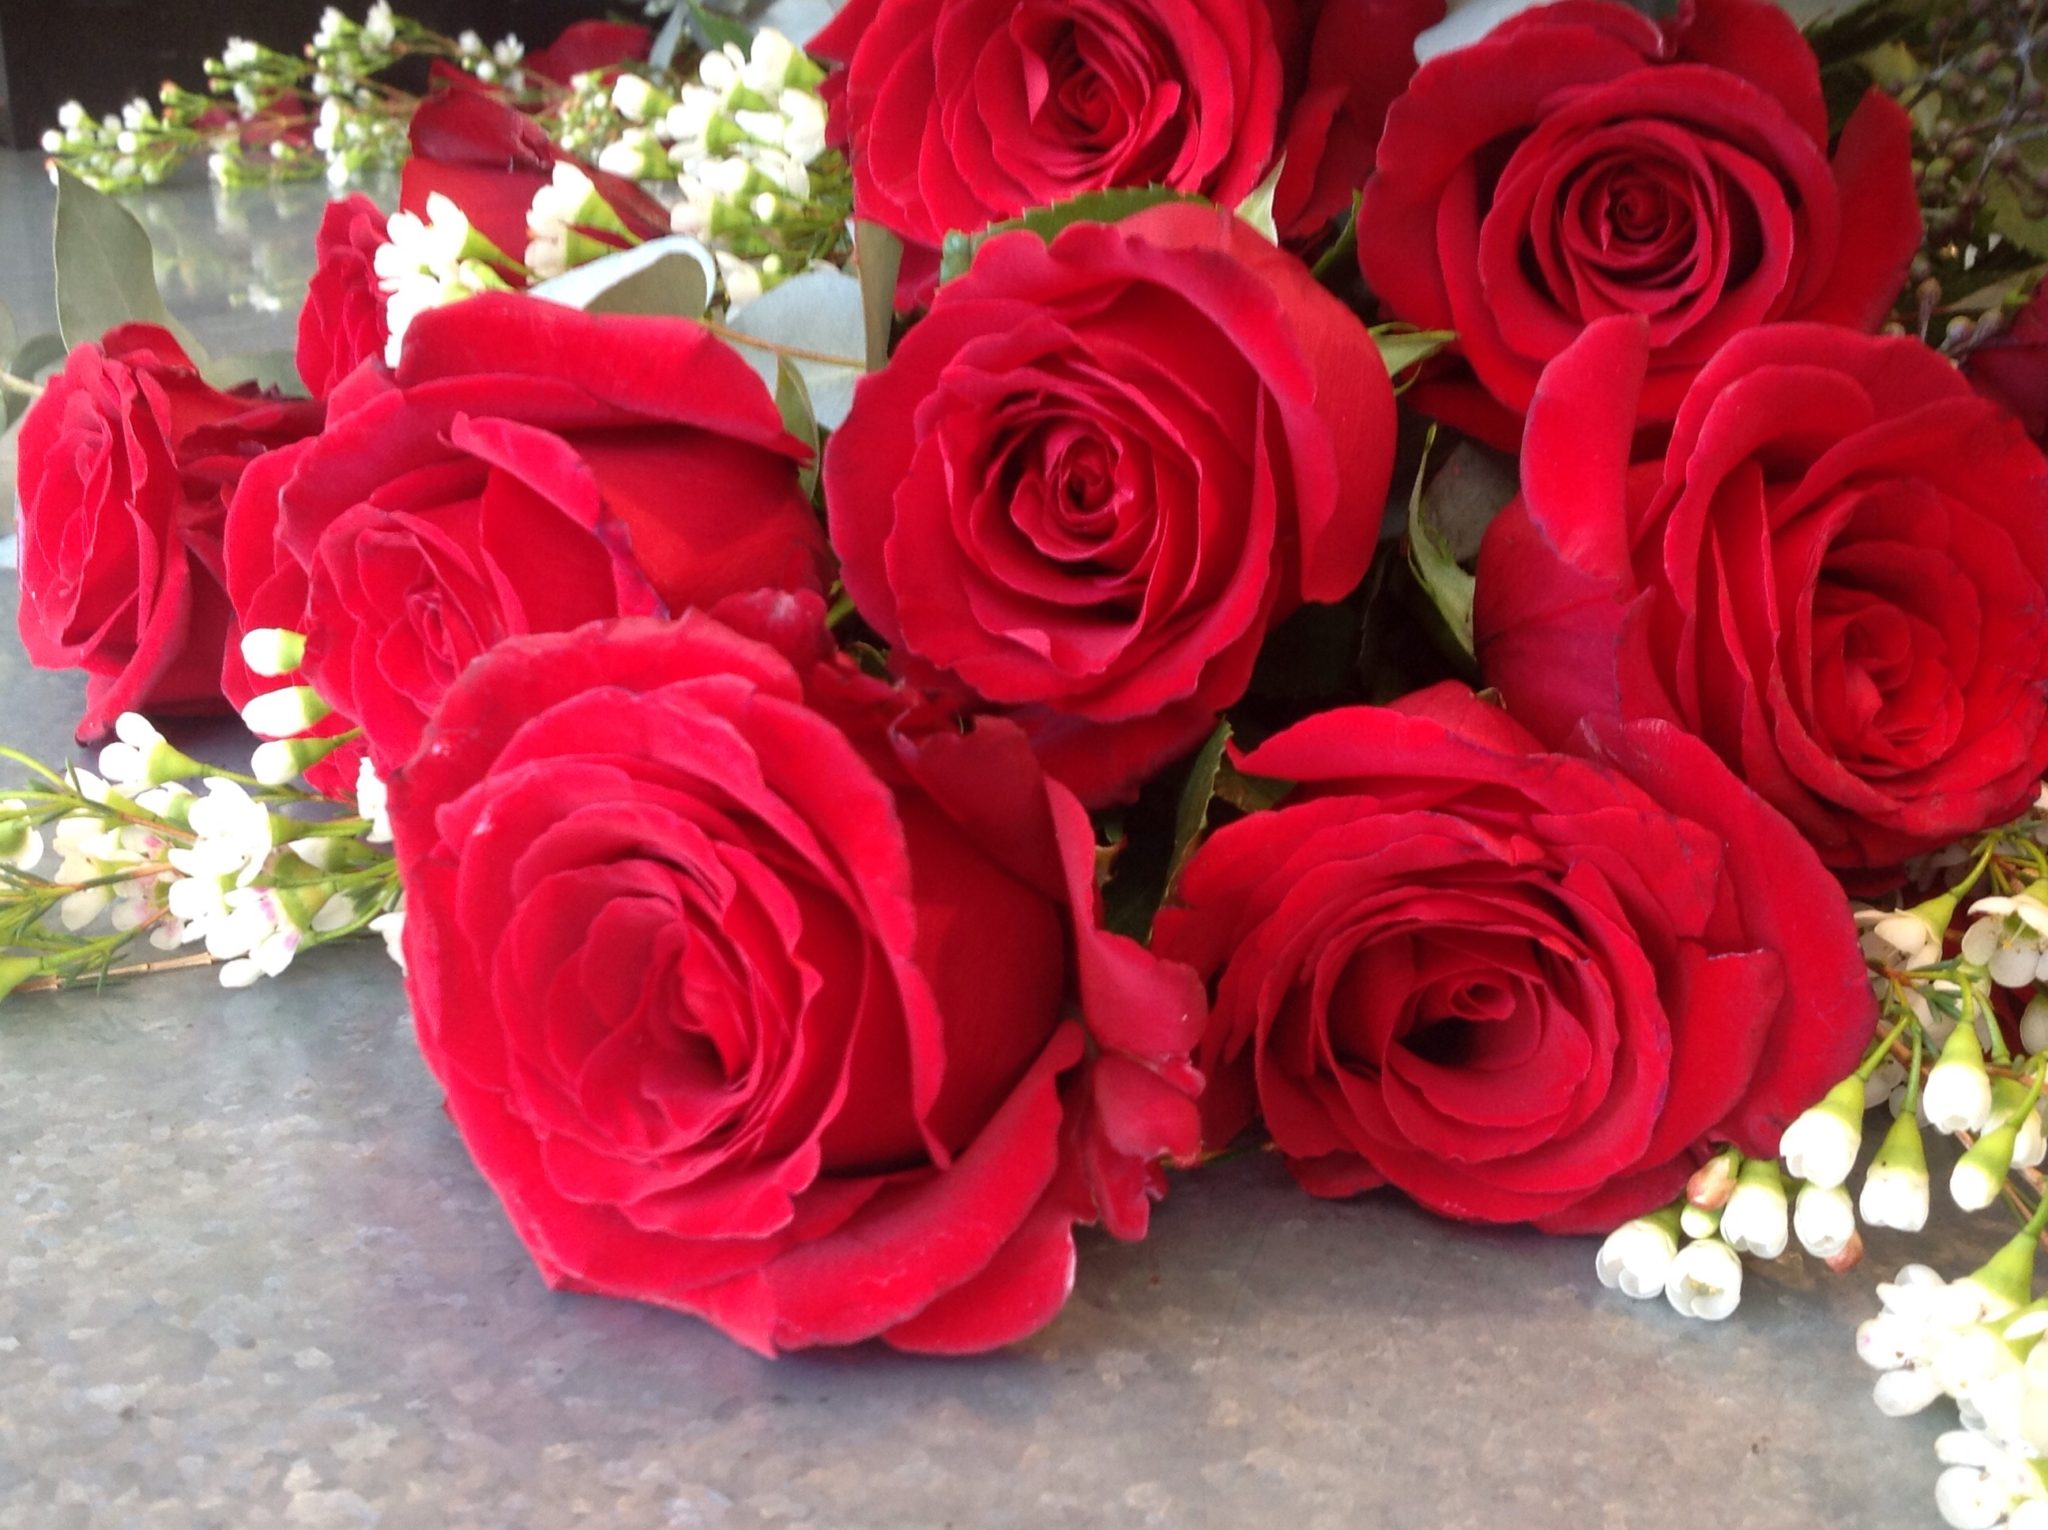 How to take care of your Valentine's Day Roses